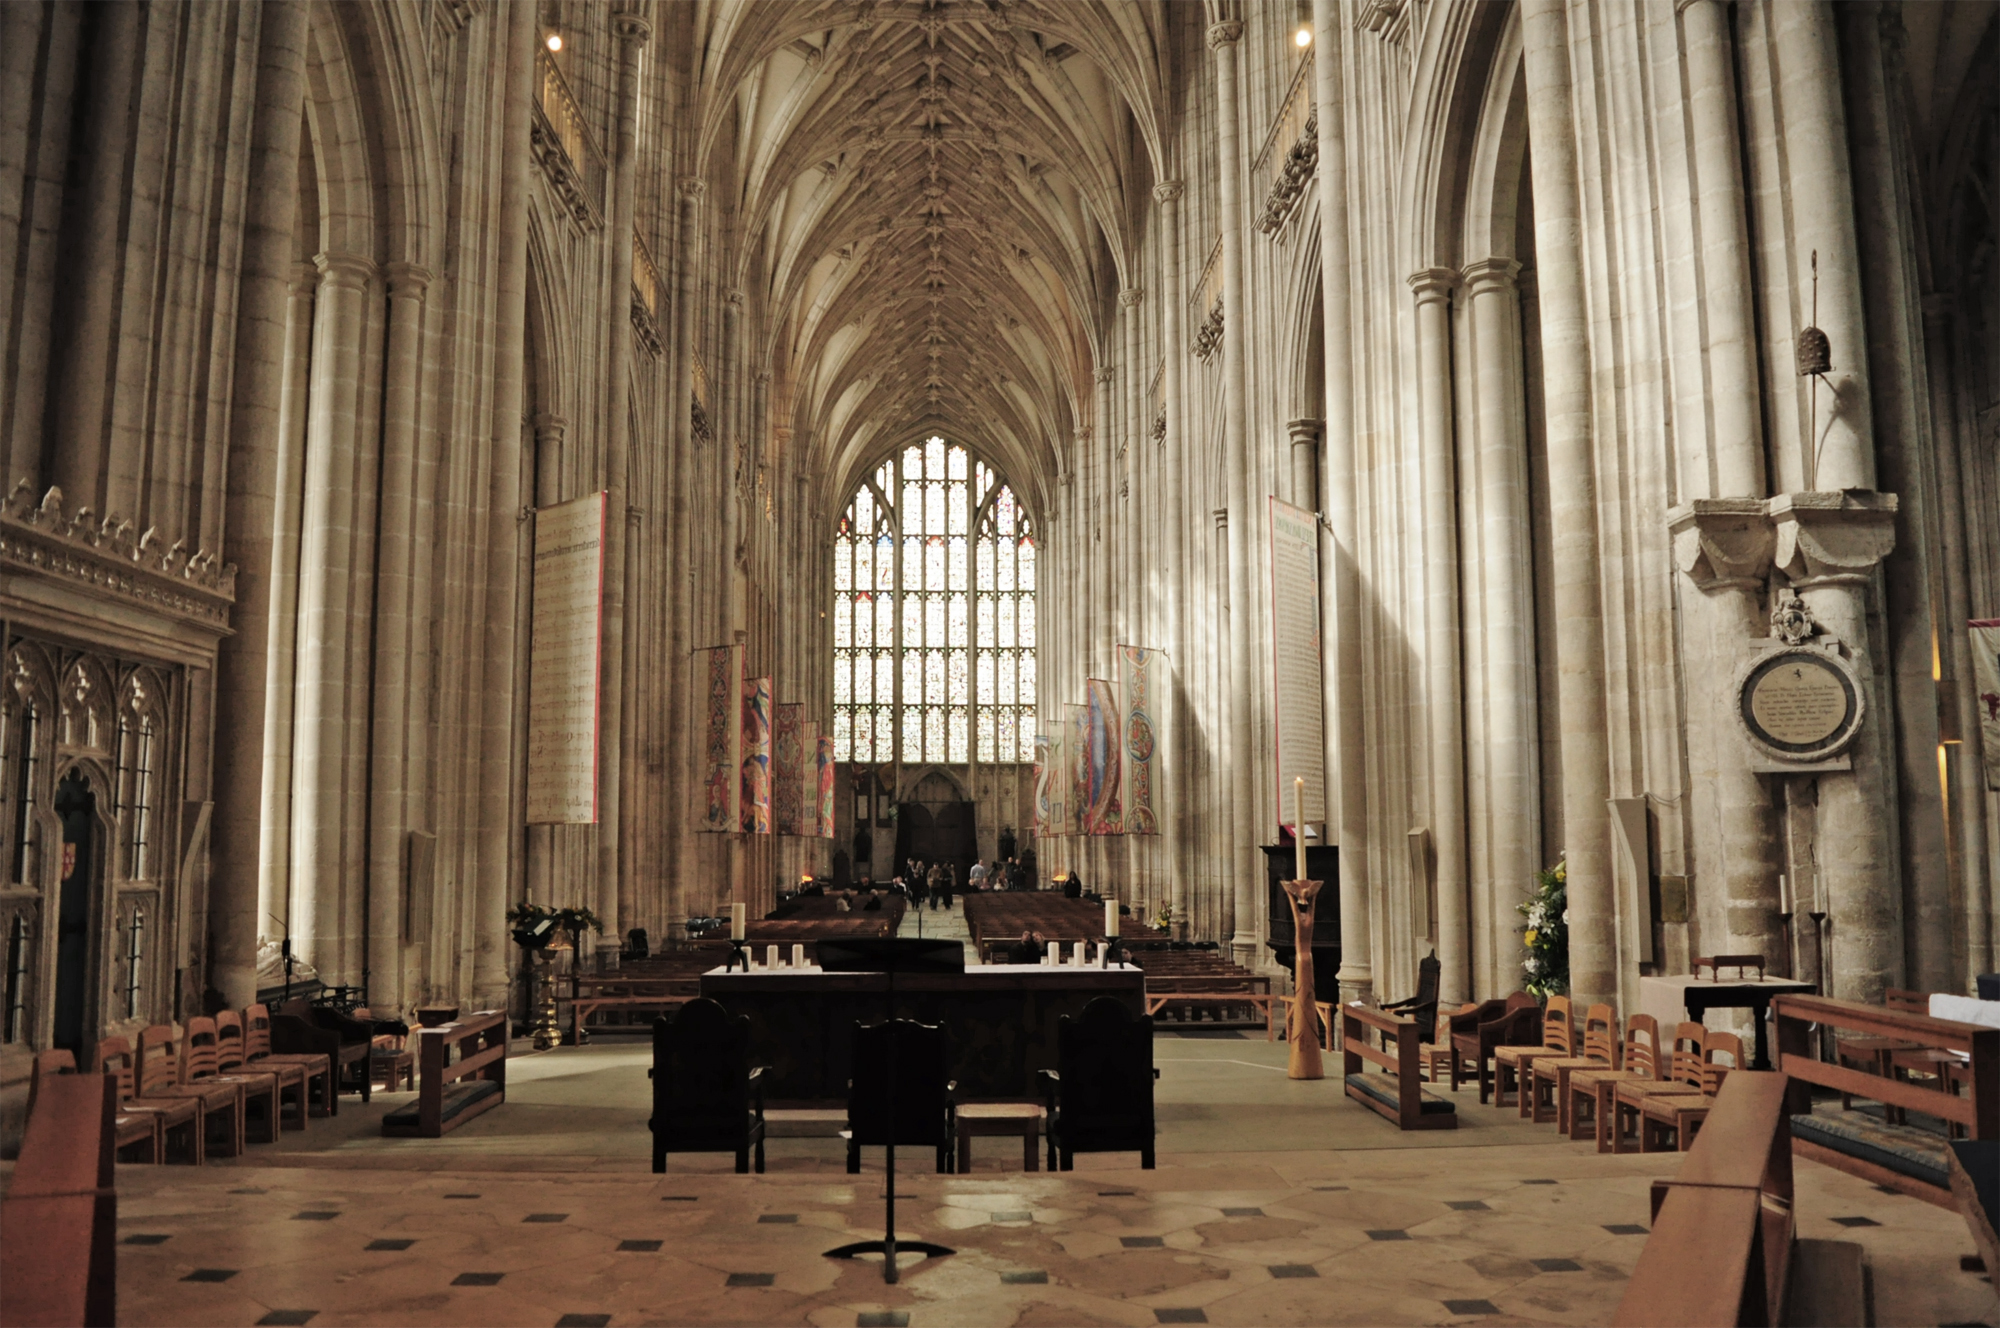 File:Winchester Cathedral, Interior.JPG